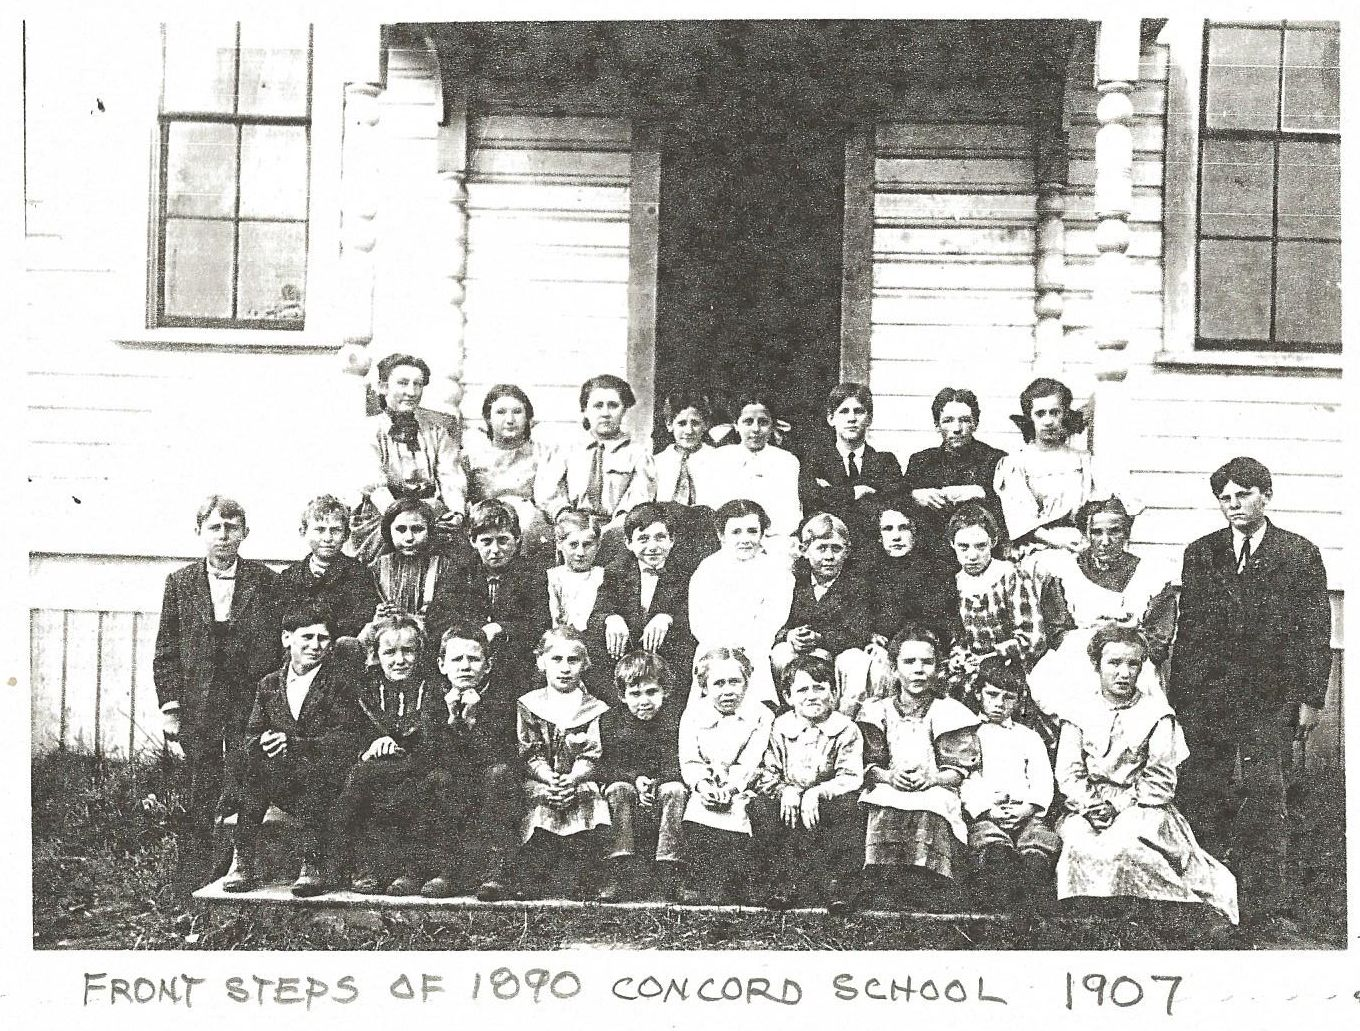 Photo of the 1907 Concord School student body, on the steps of the 1890 (first) Concord school building